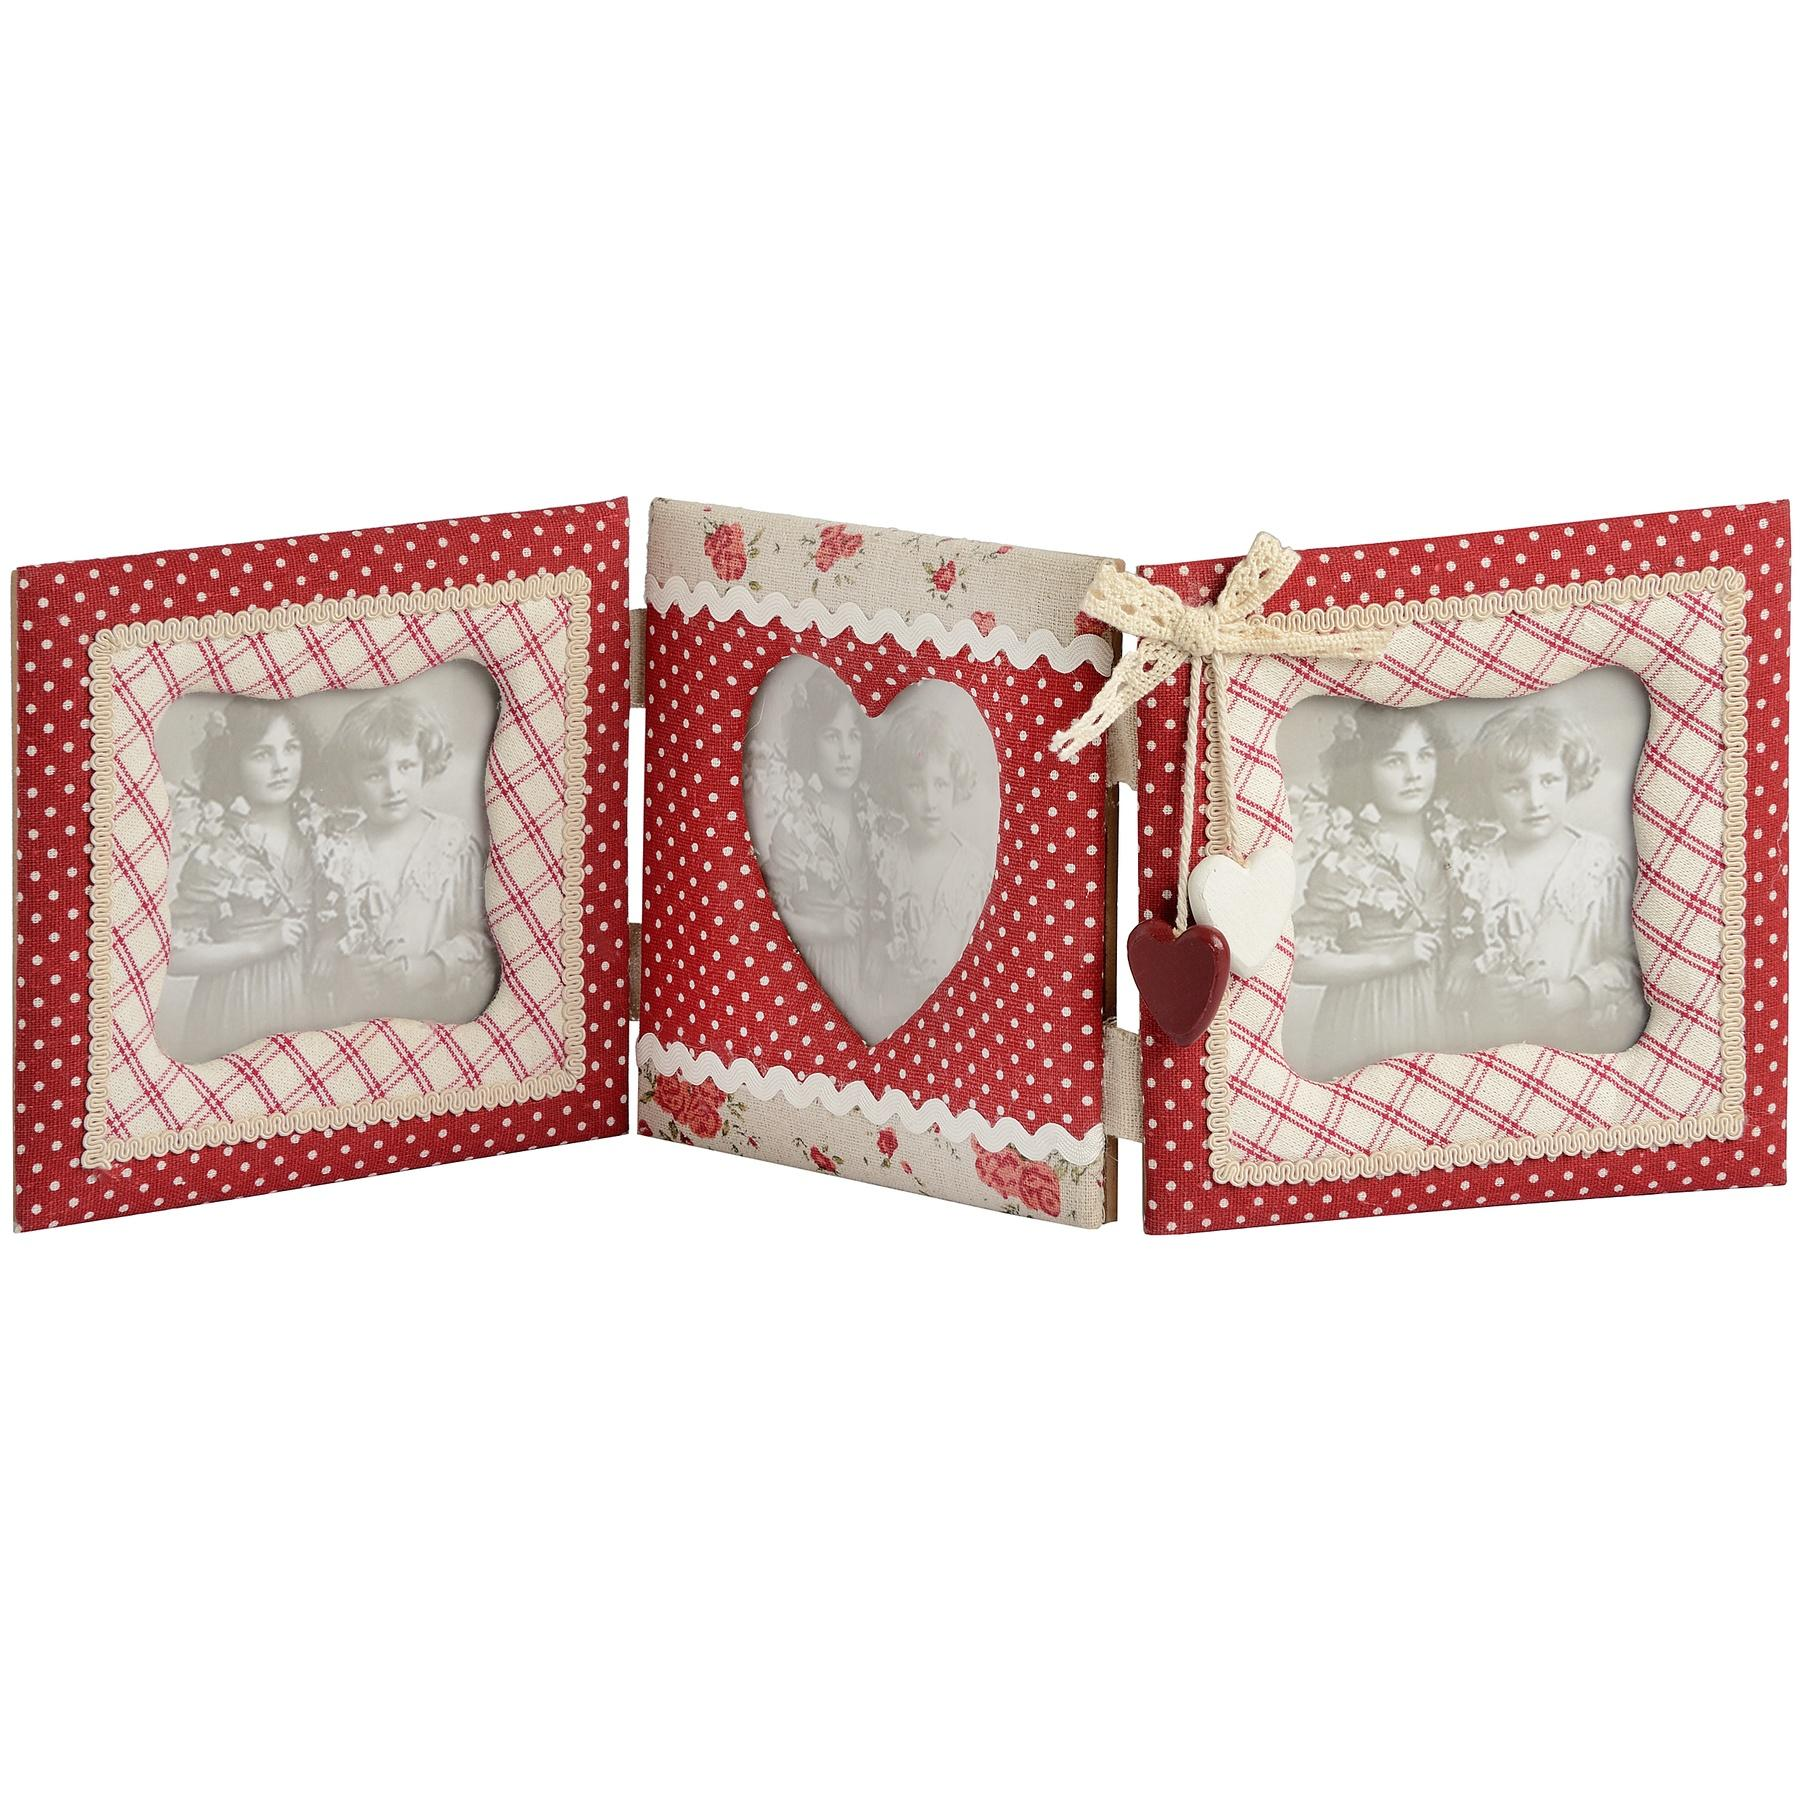 Triple floral fabric portrait photo frame with hearts adornment